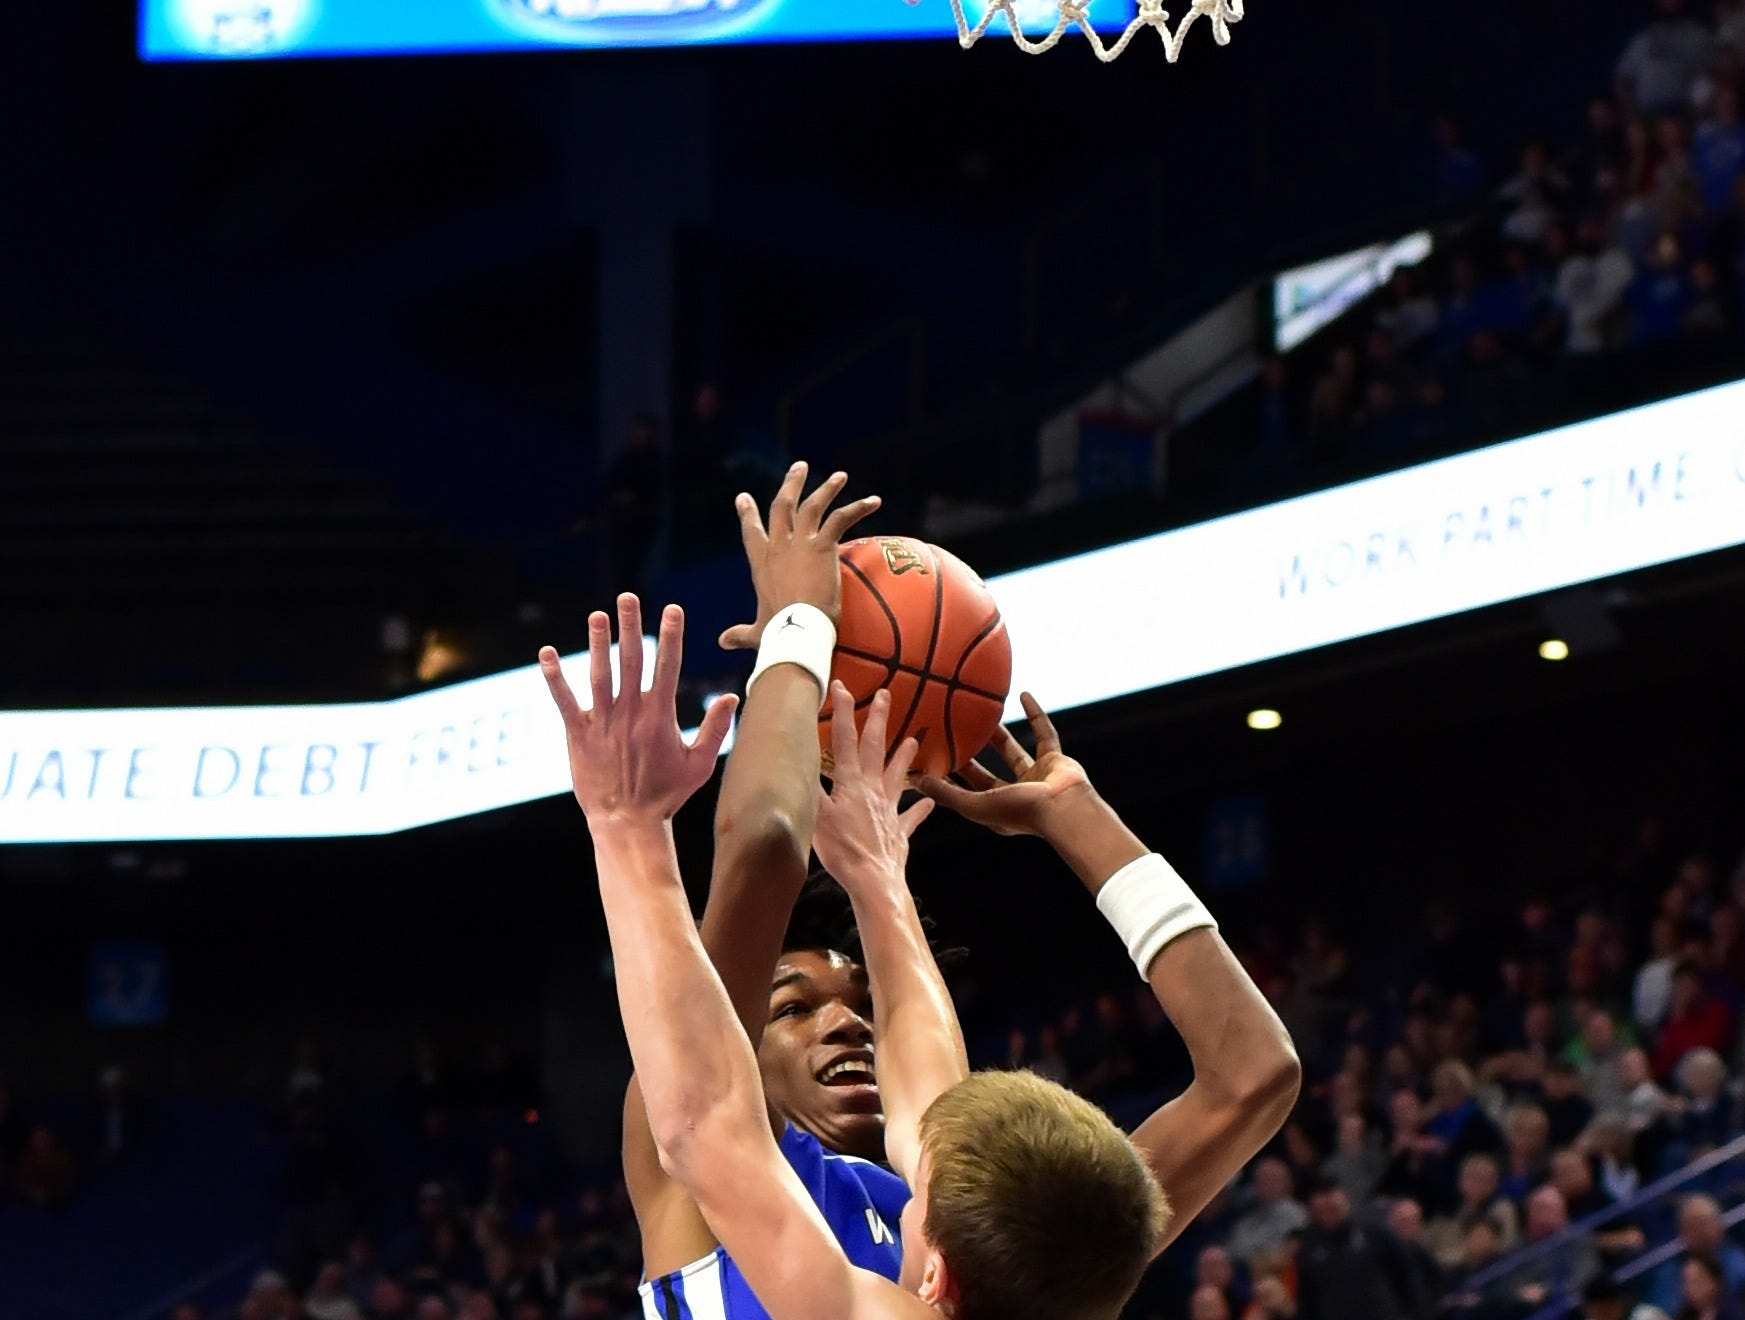 Dieonte Miles pushes up a jump shot for Walton Verona at the KHSAA Sweet 16 Tournament at Rupp Arena in Lexington, KY, March 6, 2019